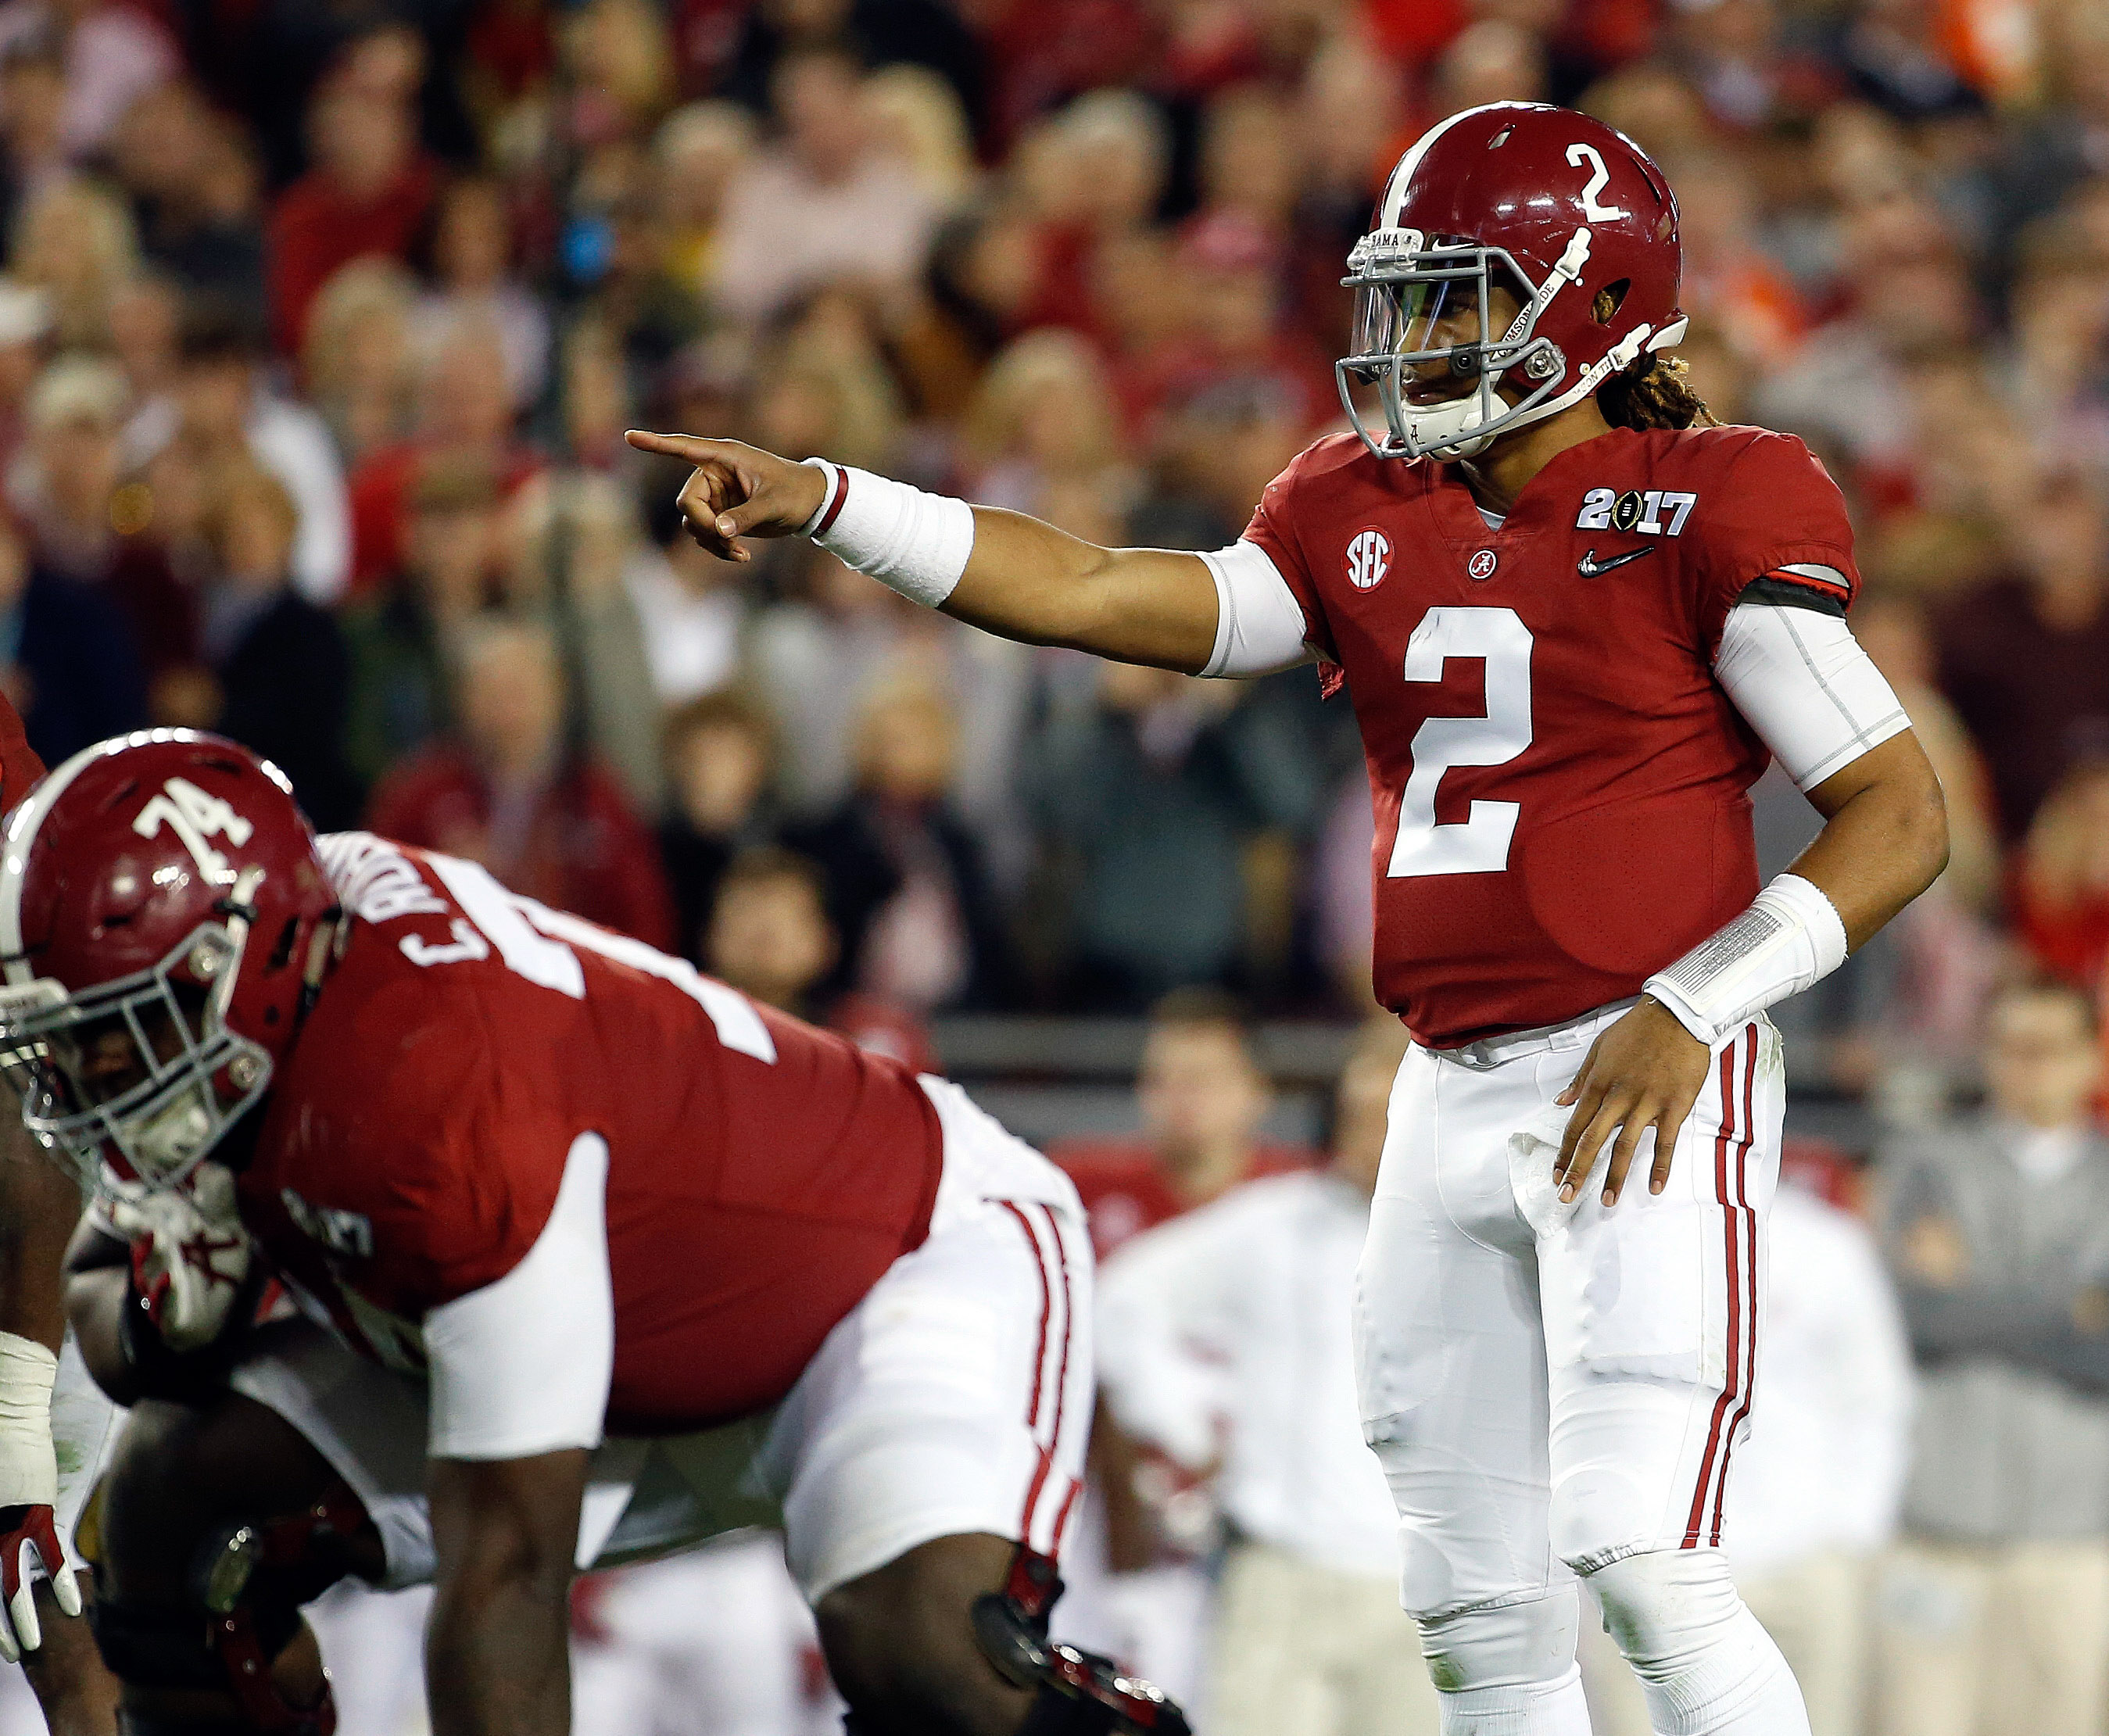 Top 10 College Football Quarterbacks Most Likely To Win